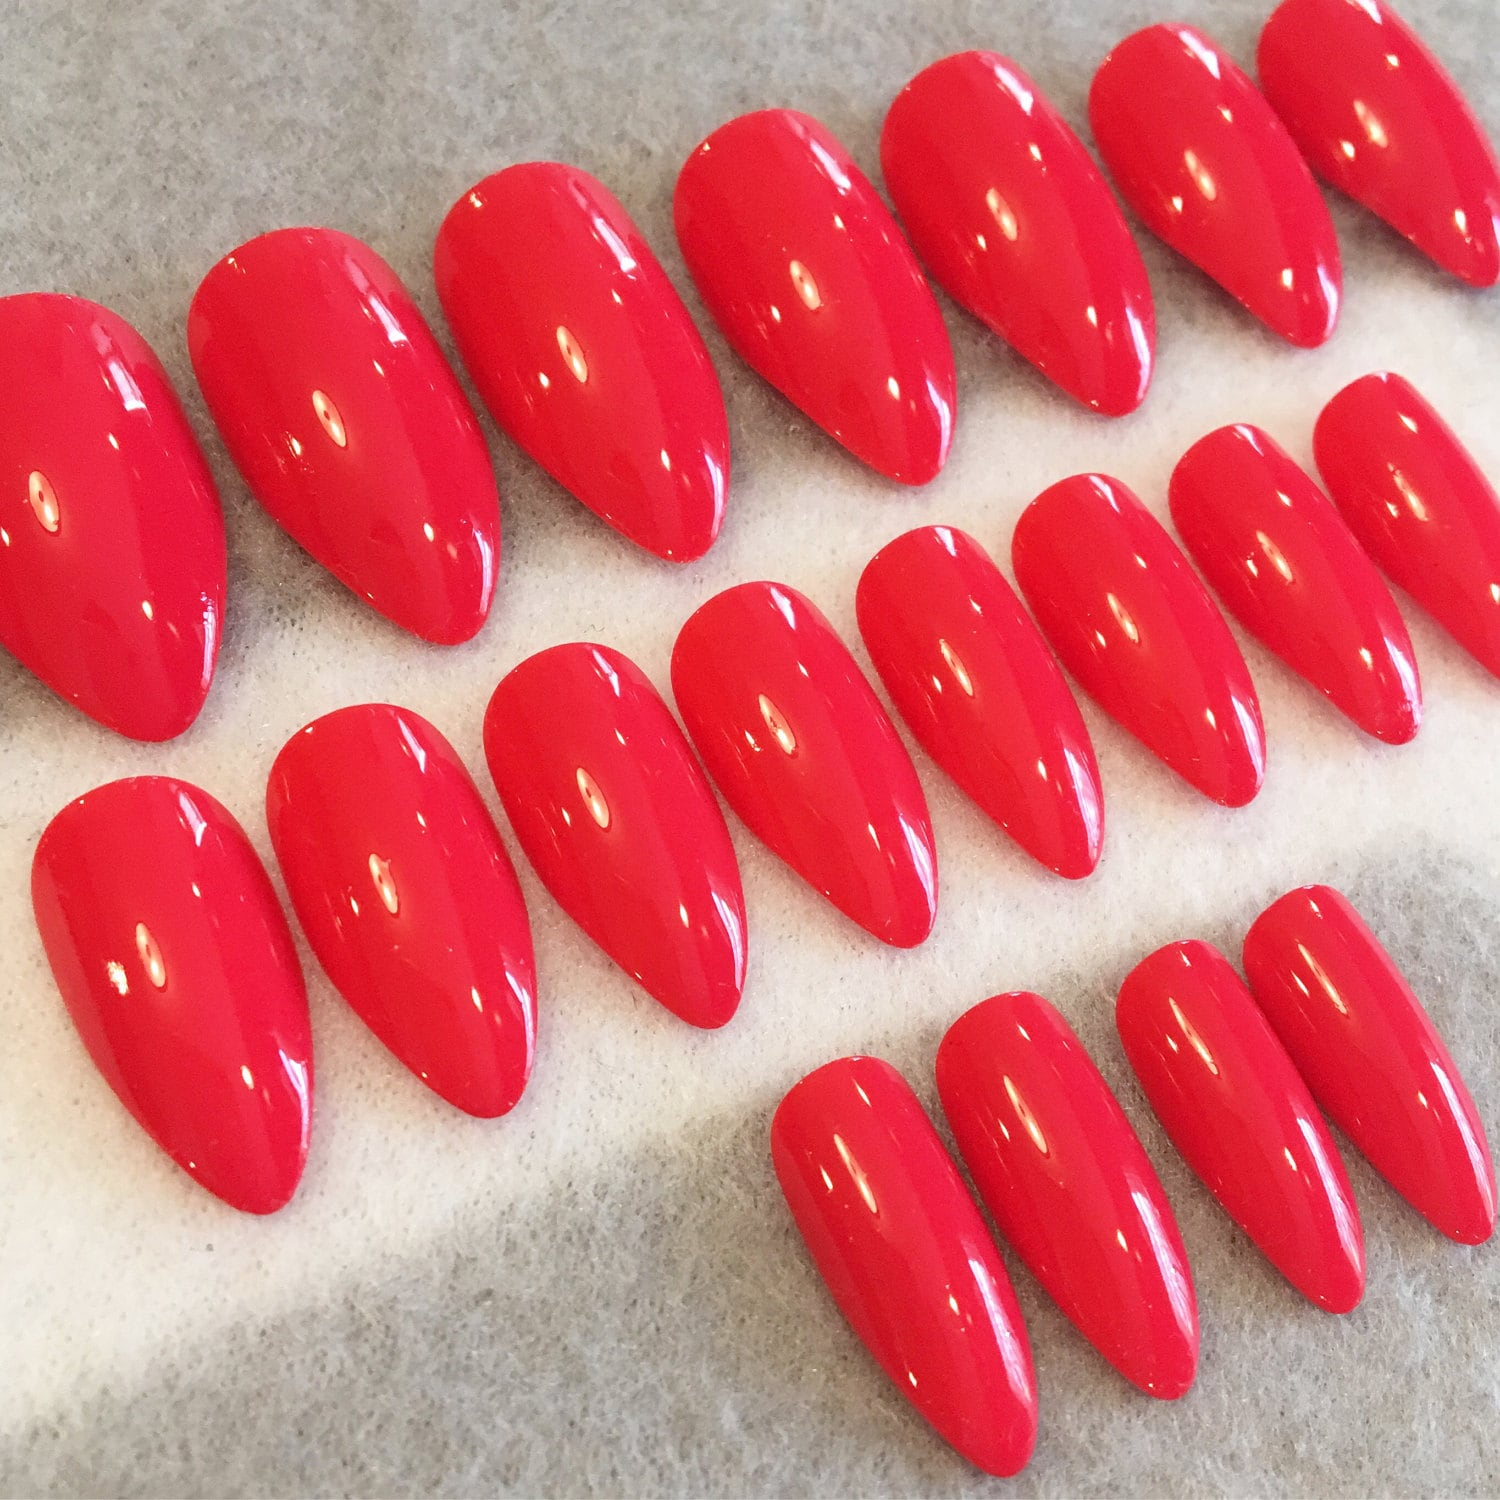 Coral-Red Fake Nails * Faux Nails * Glue On Nails * Stiletto Nails ...